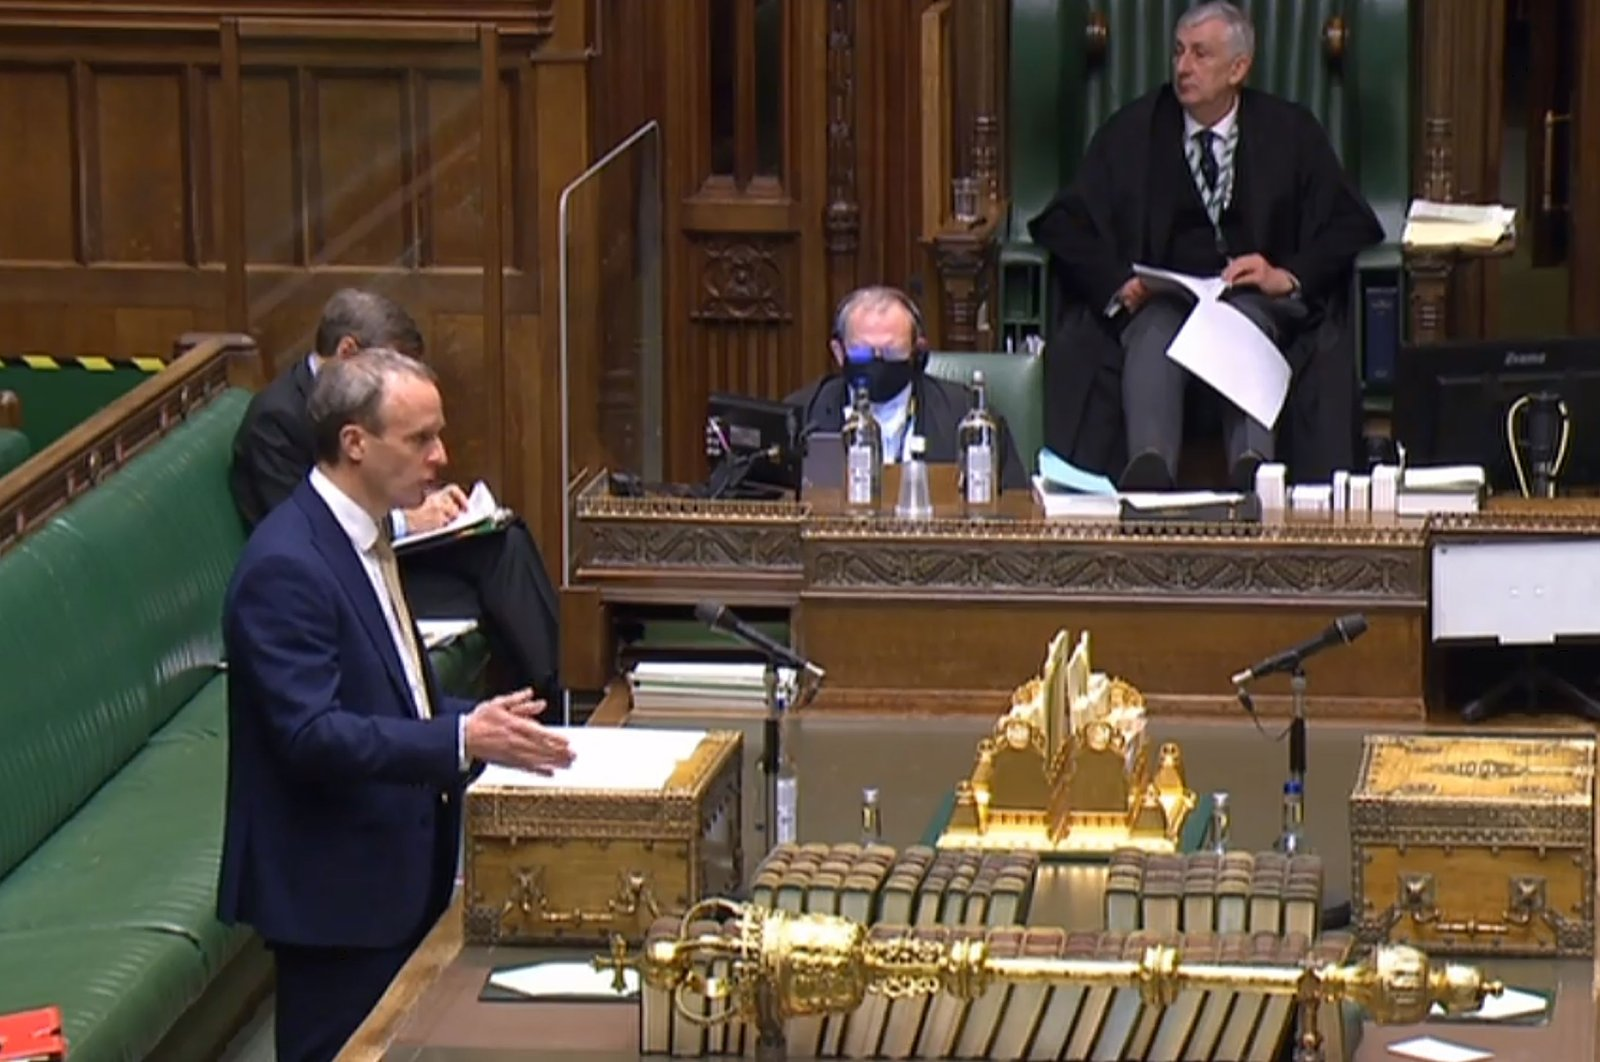 """A video grab from footage broadcast by the U.K. Parliament's Parliamentary Recording Unit (PRU) shows Britain's Foreign Secretary Dominic Raab as he makes a statement on trade measures over alleged Chinese human rights violations against its Uighur minority in a hybrid, socially distanced session at the House of Commons, in London, on Jan. 12, 2021.   Britain on January 12 accused China of human rights violations against its Uighur minority, as it announced new rules to ban imports of goods suspected of using forced labor. The abuses were """"on an industrial scale,"""" Foreign Secretary Dominic Raab told parliament, adding that Britain had a """"moral duty to respond."""" (Photo by - / PRU / AFP) / RESTRICTED TO EDITORIAL USE - MANDATORY CREDIT """" AFP PHOTO / PRU """" - NO USE FOR ENTERTAINMENT, SATIRICAL, MARKETING OR ADVERTISING CAMPAIGNS"""